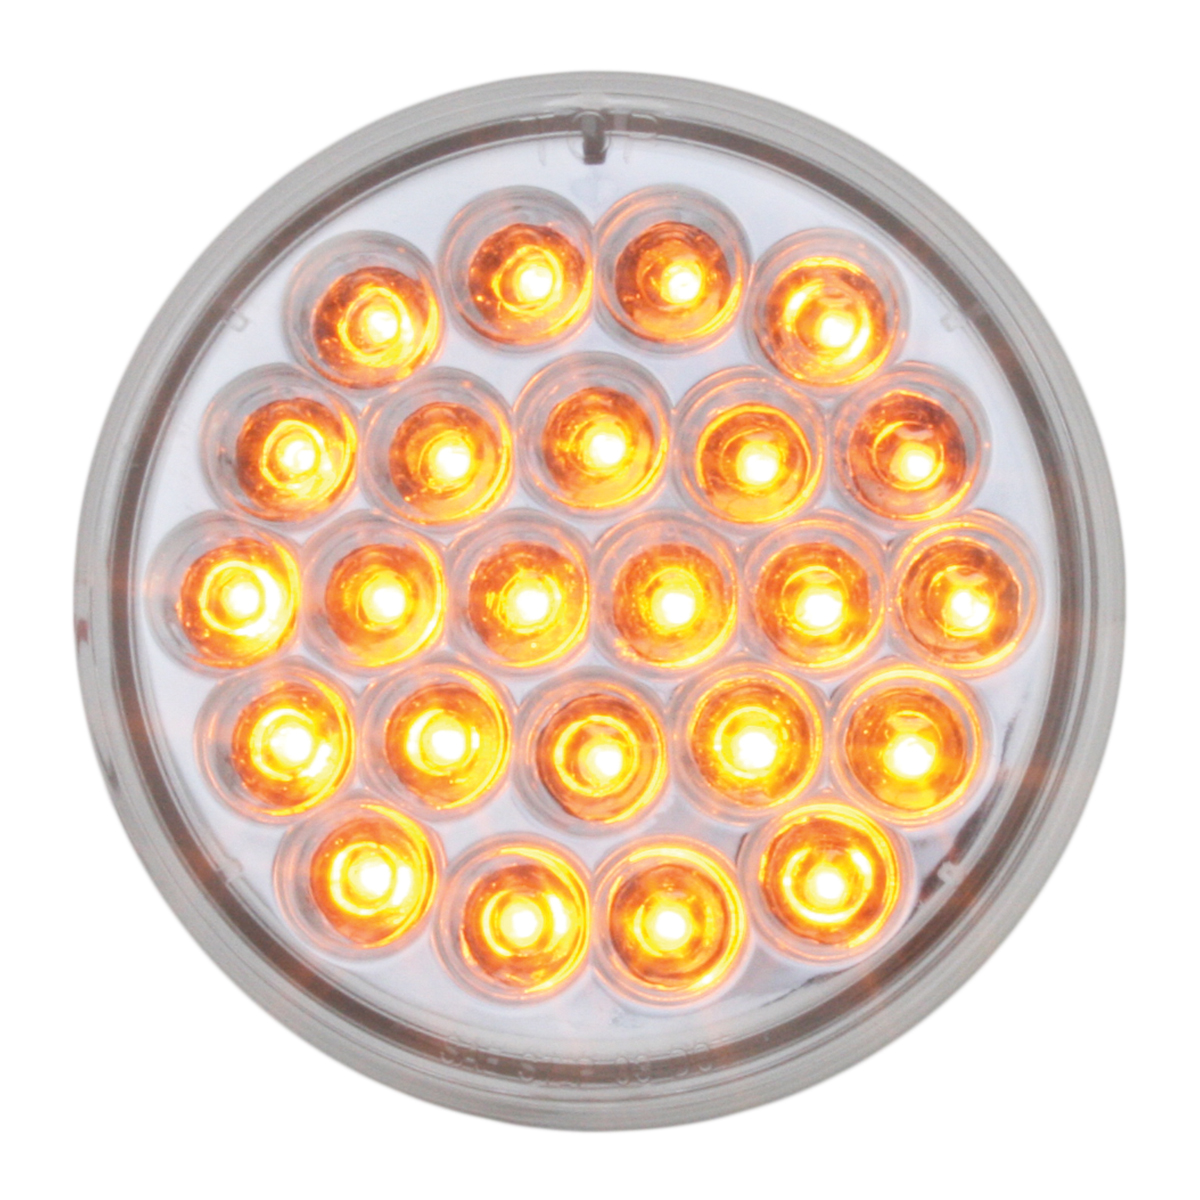 "4"" Round Synchronous/Alternating Pearl LED Strobe Light in Amber/Clear"